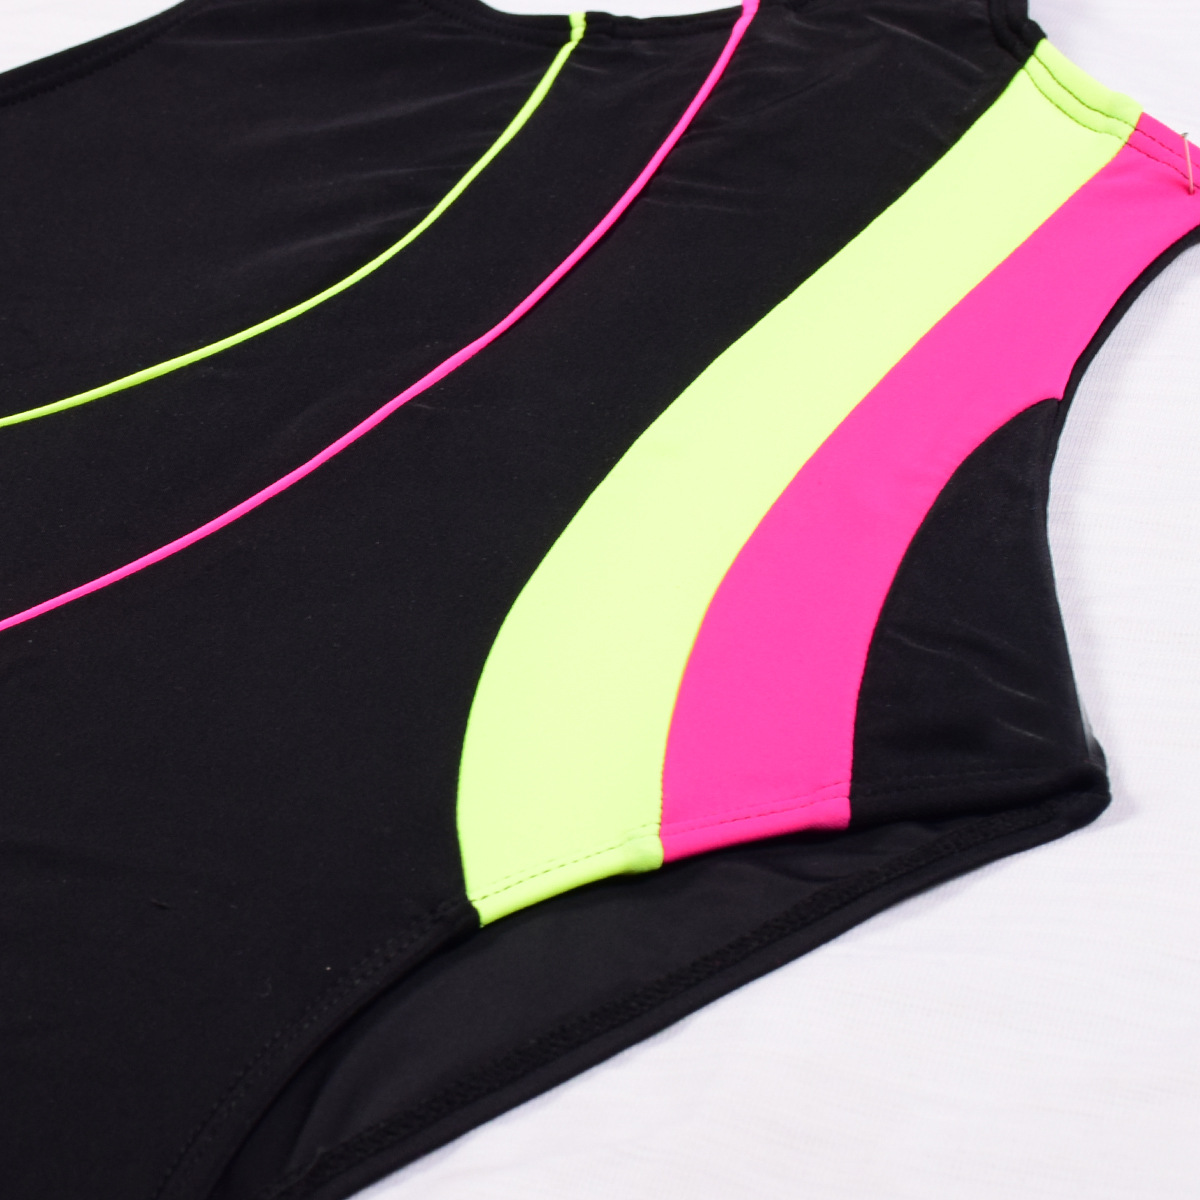 Europe And America Hot Selling Children Triangular Racing Sun Blocking Bathing Suit One-piece Students Training Surfing Suit